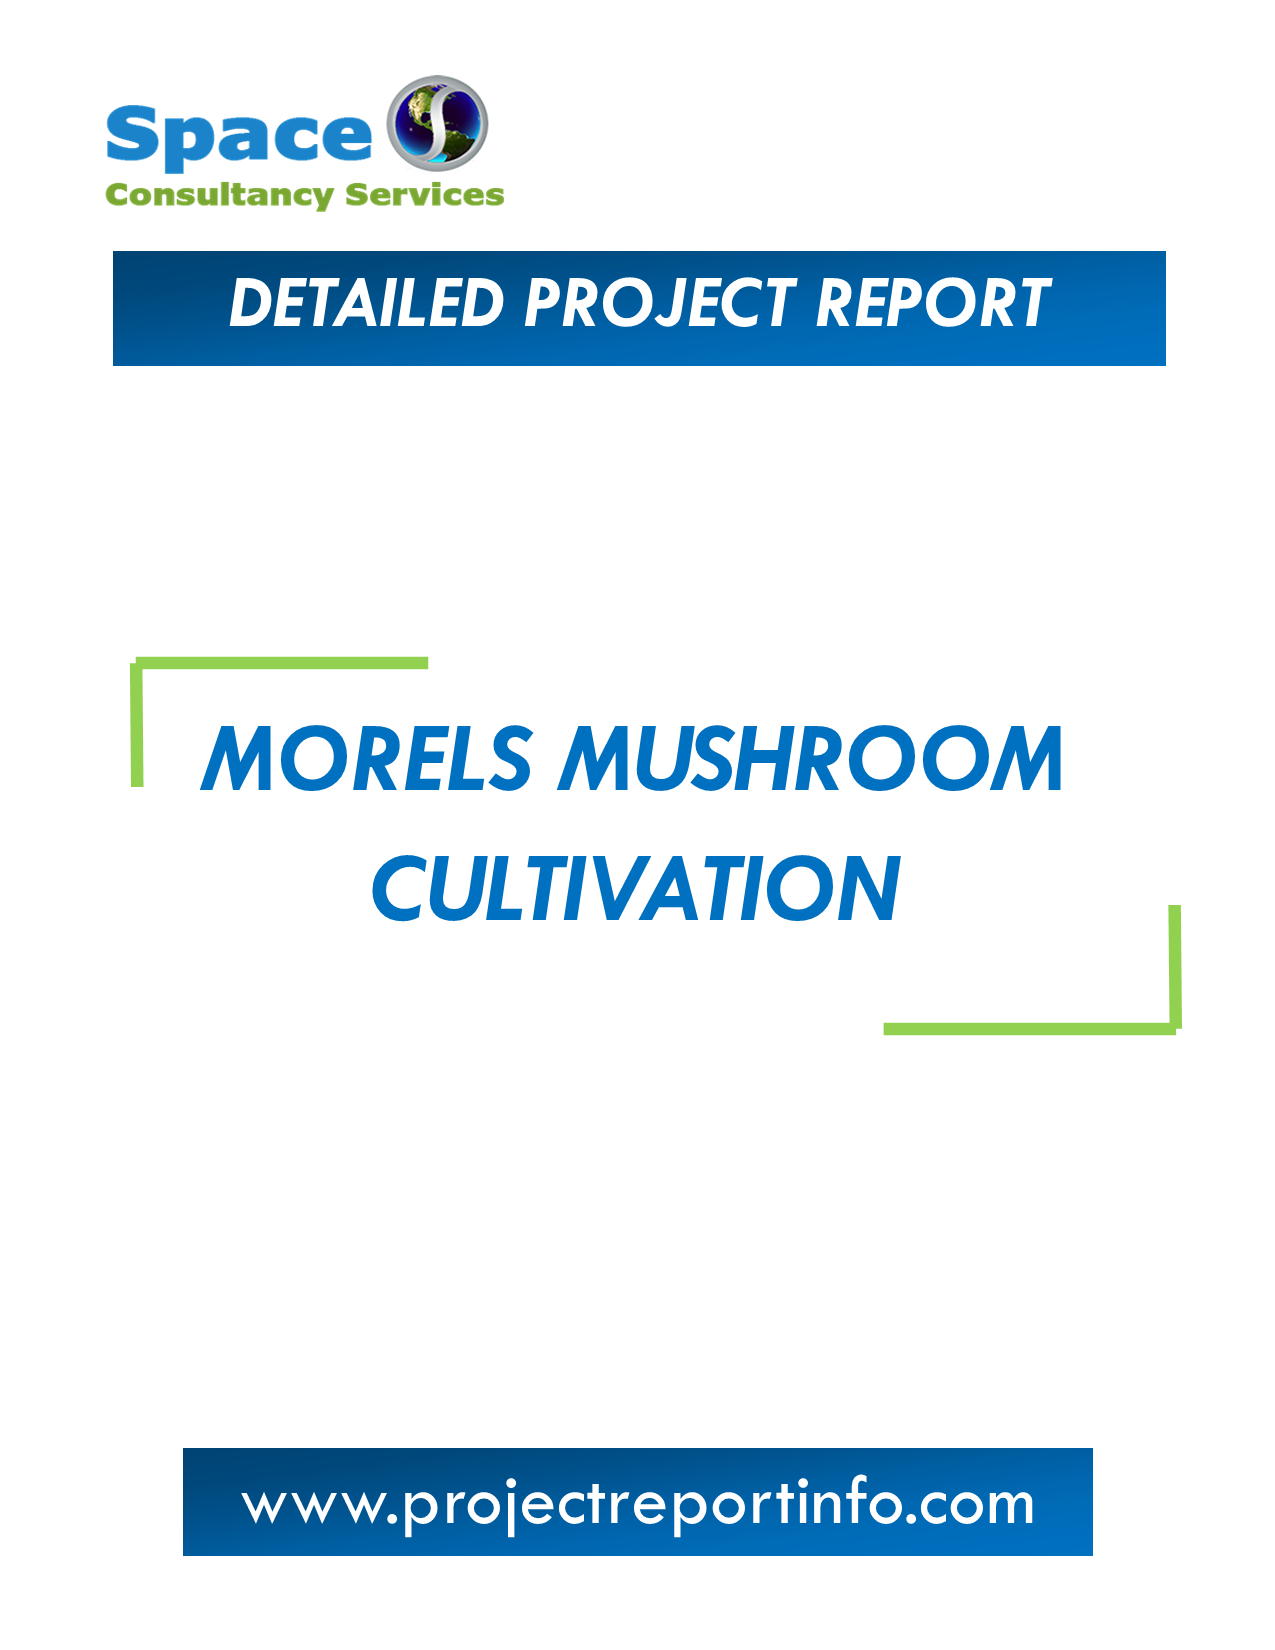 Project Report on Morels Mushroom Cultivation